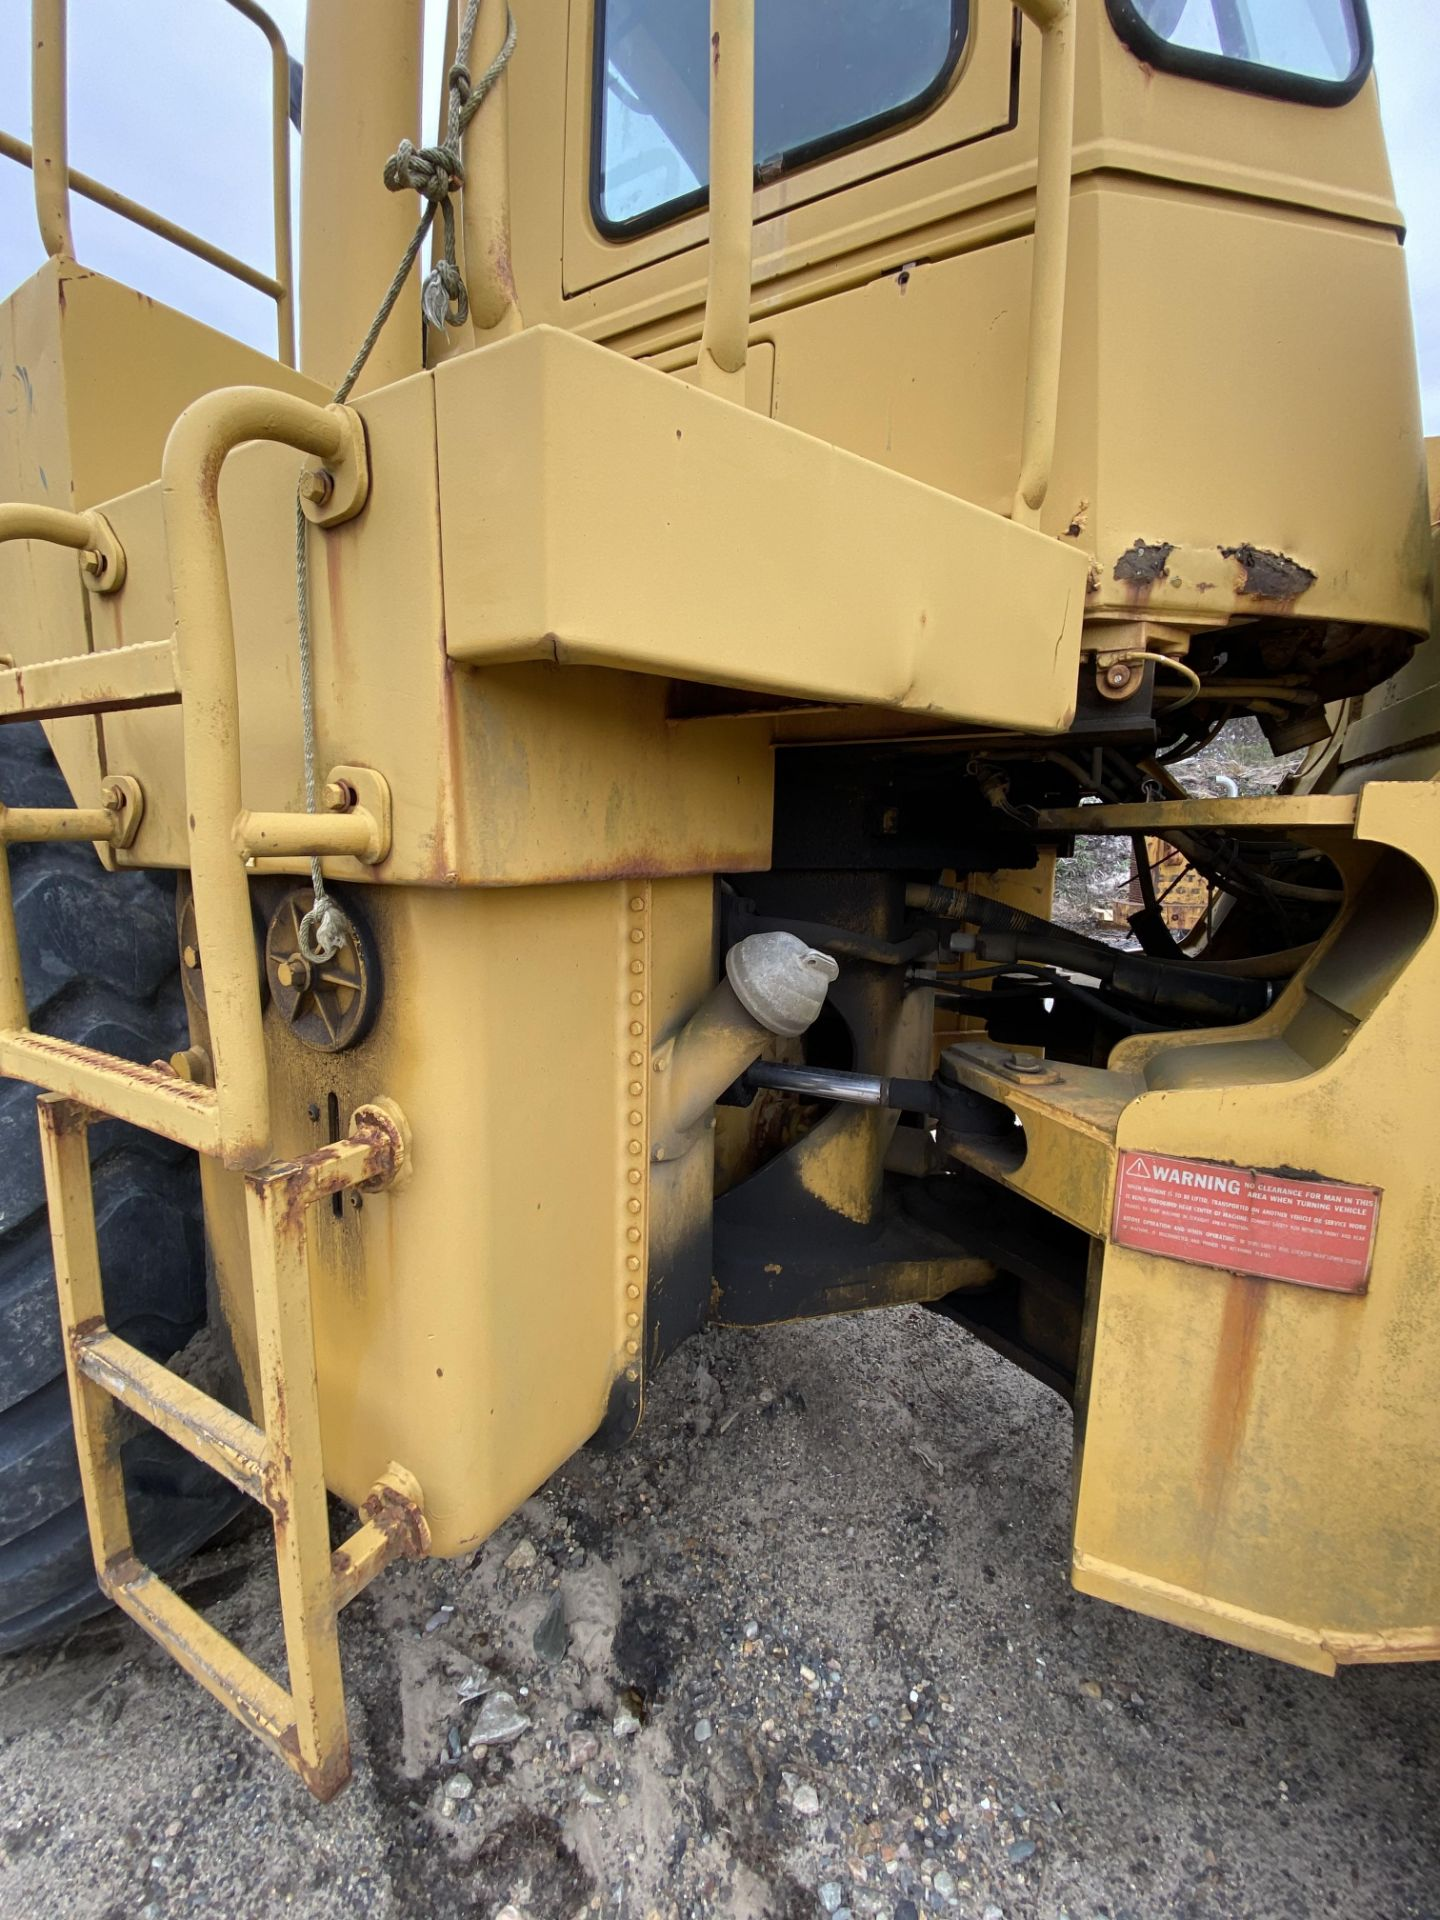 1980 Caterpillar 966D Wheel Loader s/n 99Y02108, Meter Reads 4,664 Hours, Have Title - Image 16 of 23